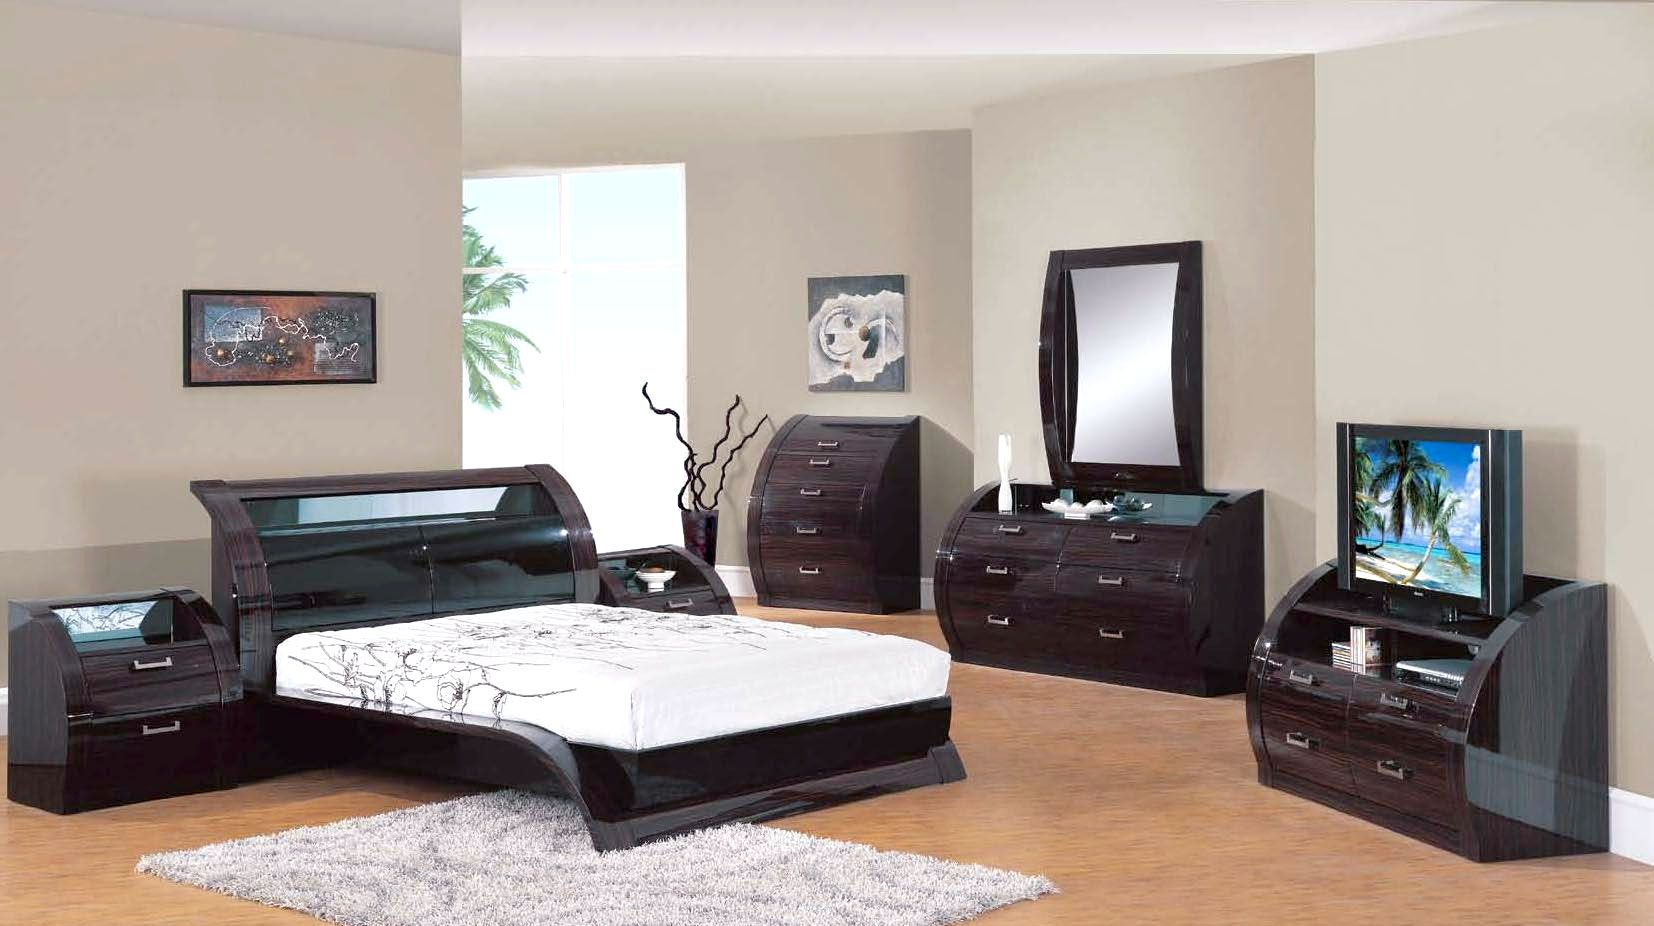 Bedroom Furniture Sets Ideas for Your Dream Home - MagMent